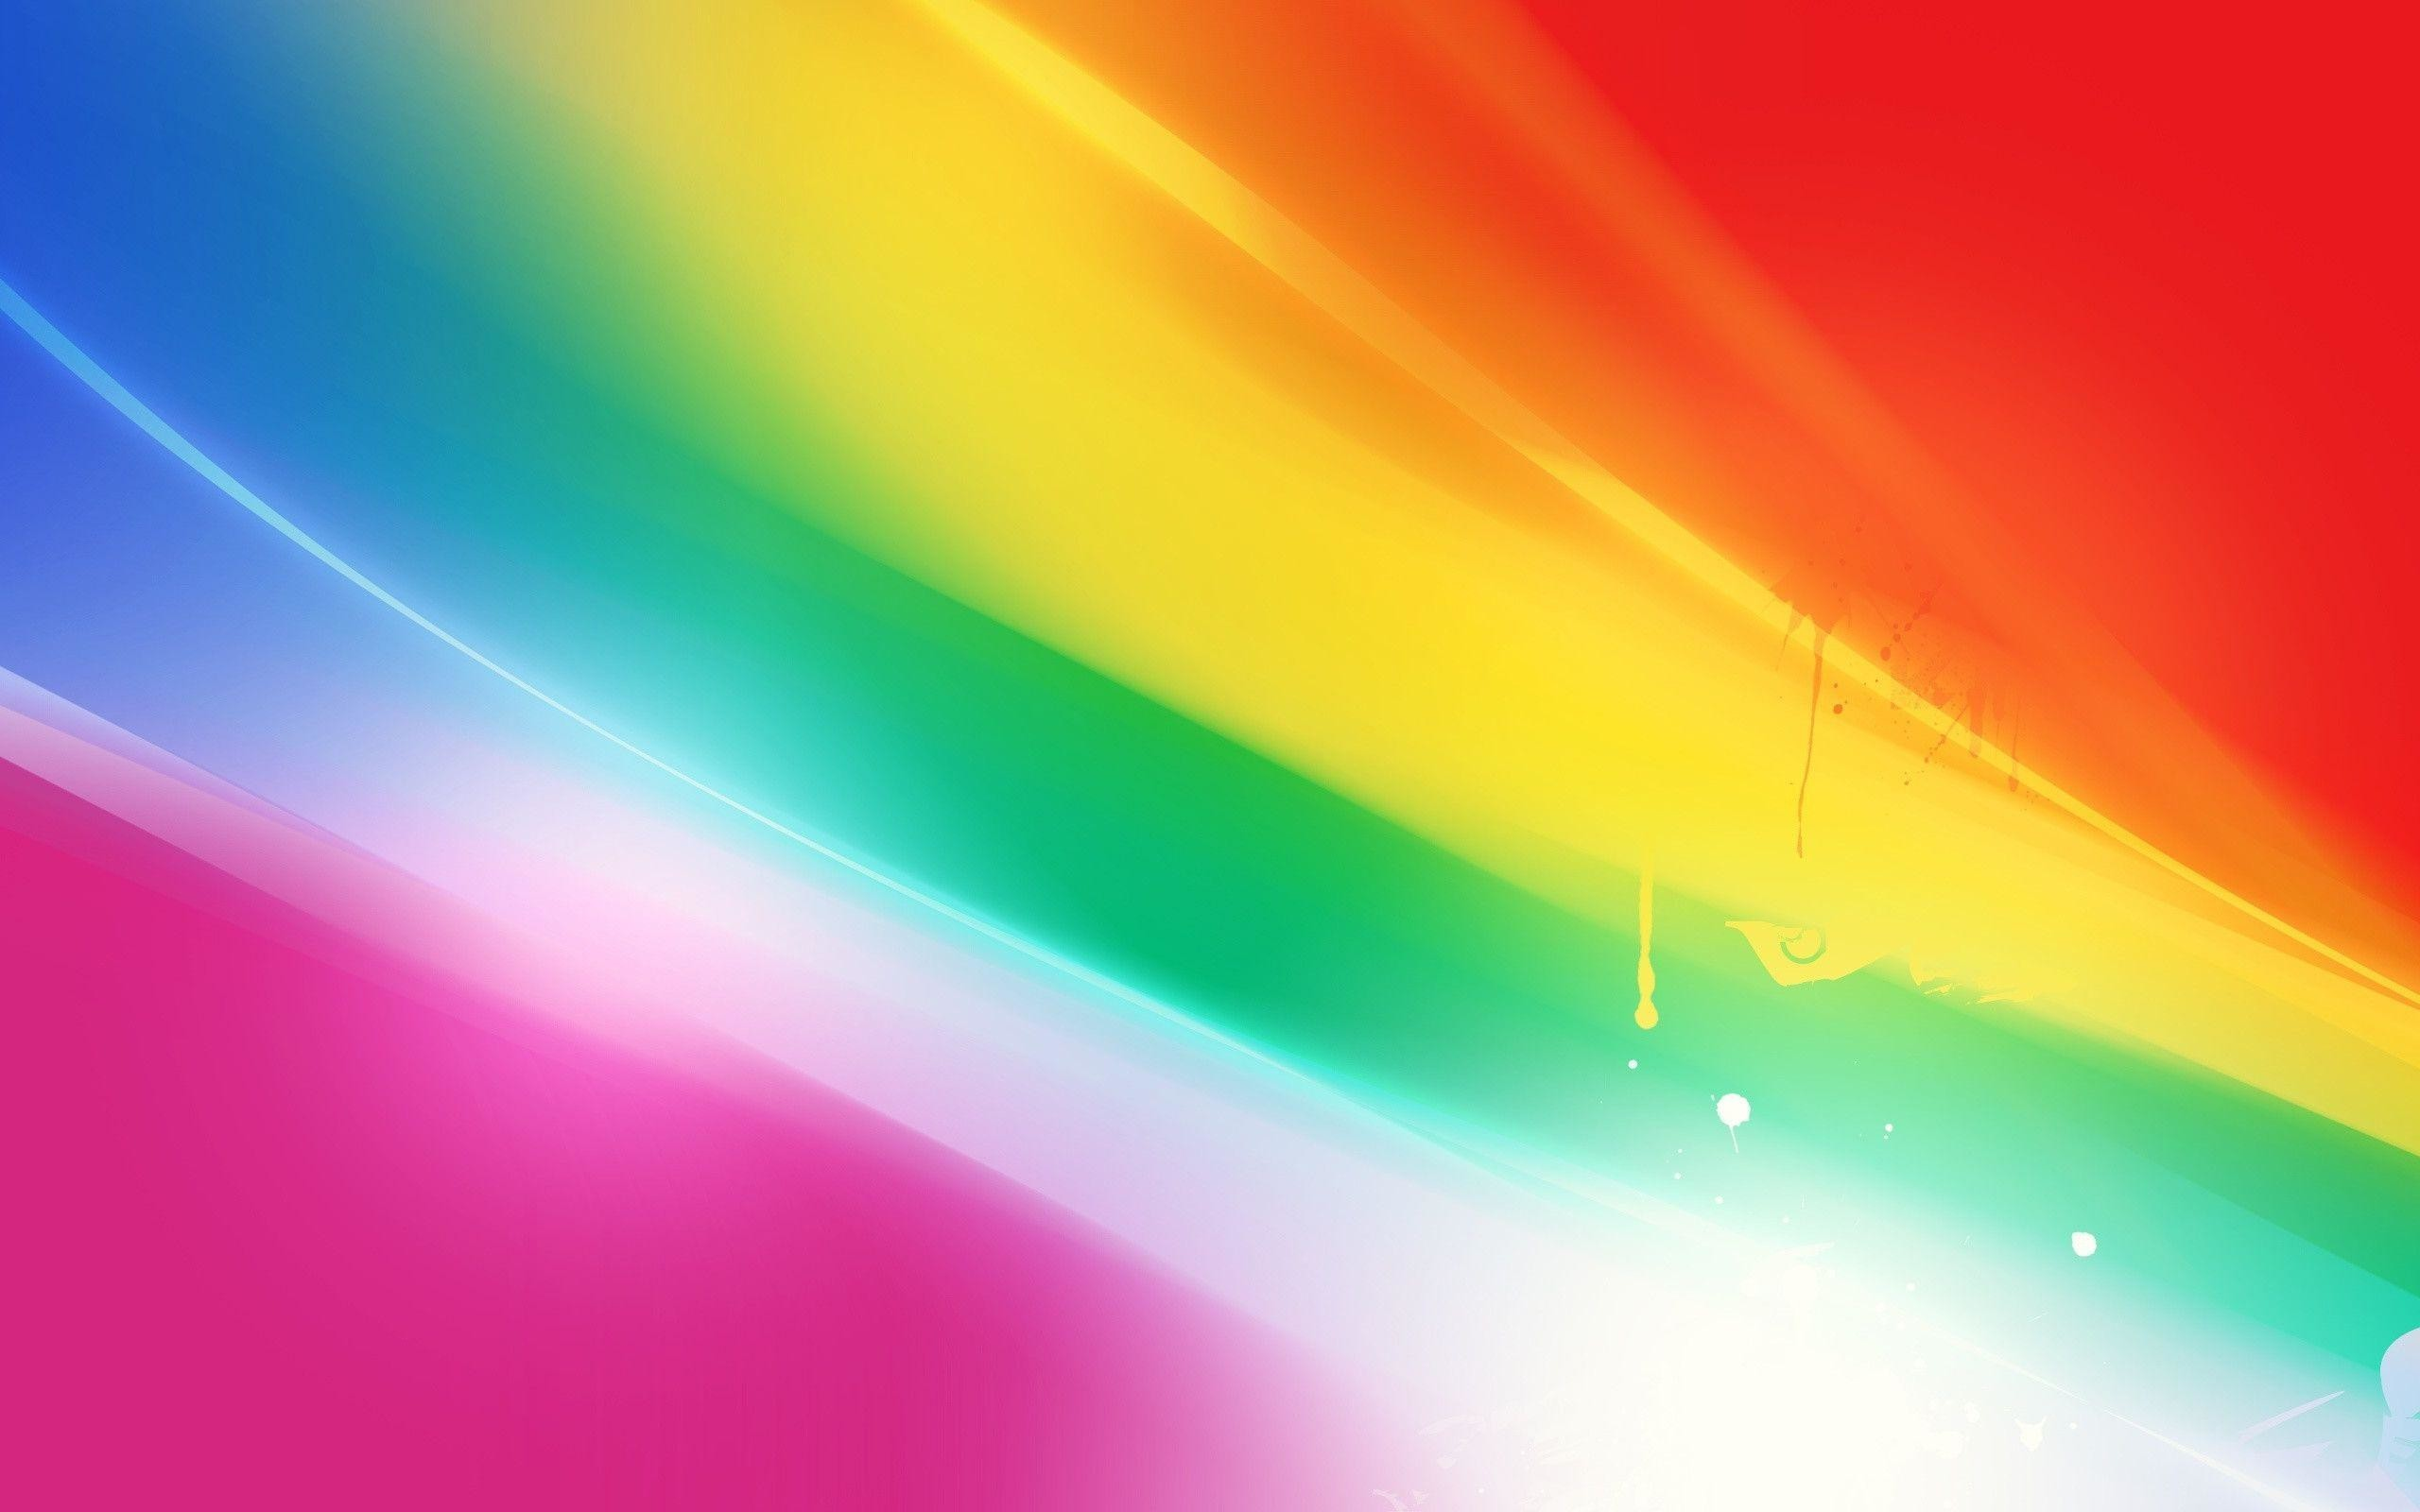 Colorful Abstract Background Hd Background 9 HD Wallpapers .